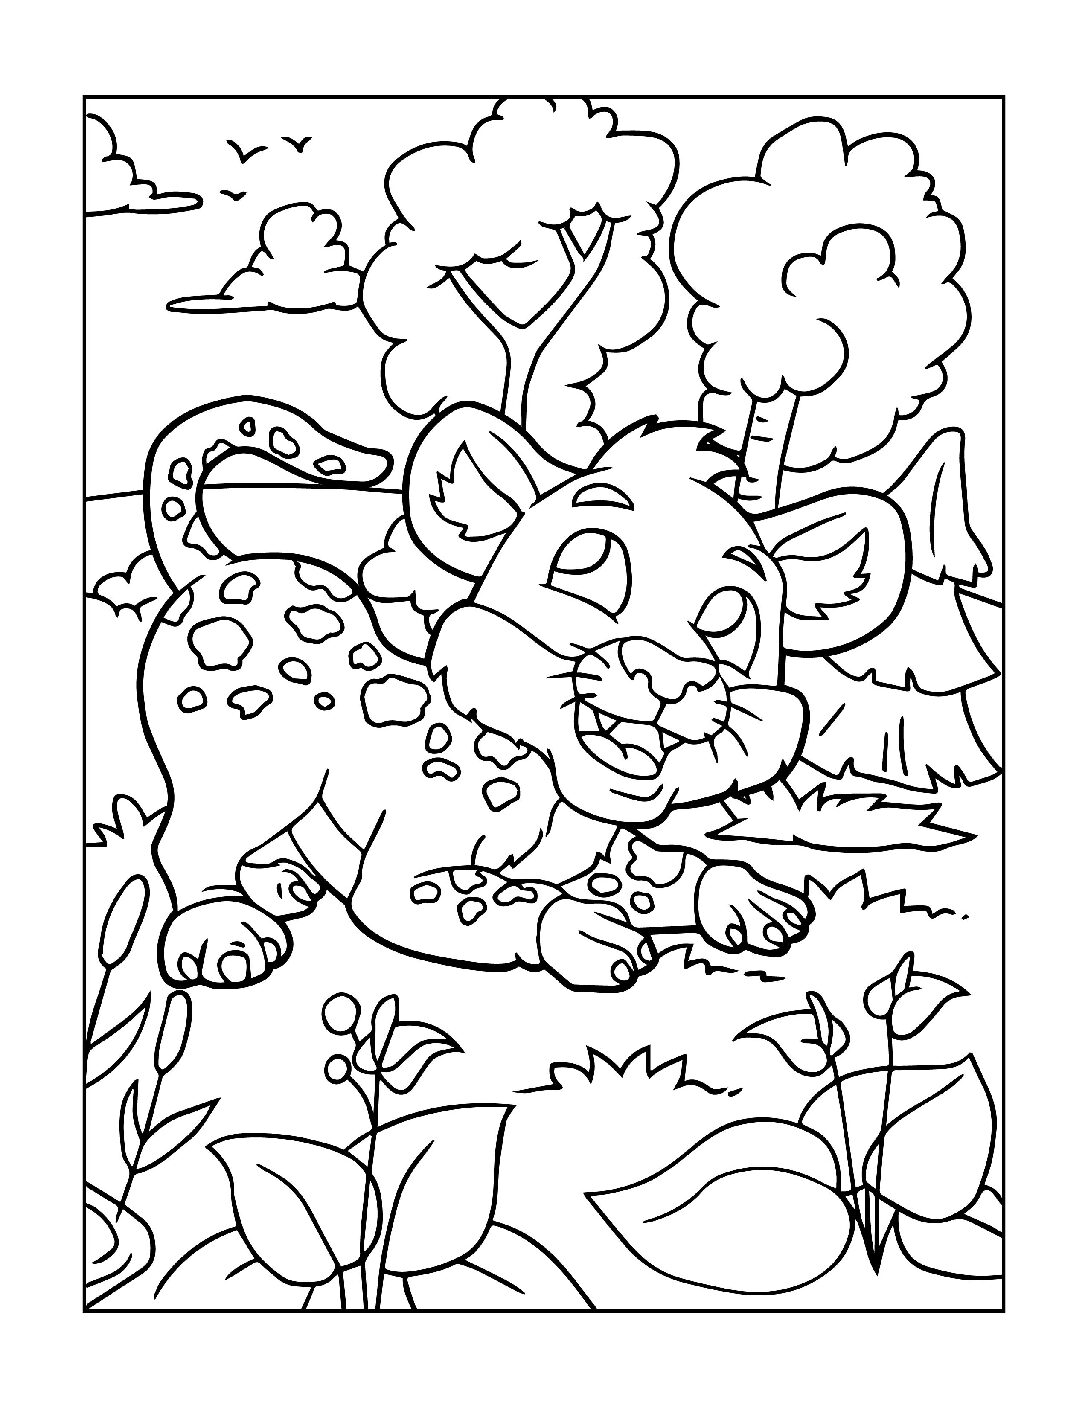 Coloring-Pages-Zoo-Animals-15-01-1-pdf Free Printable  Zoo Animals Colouring Pages